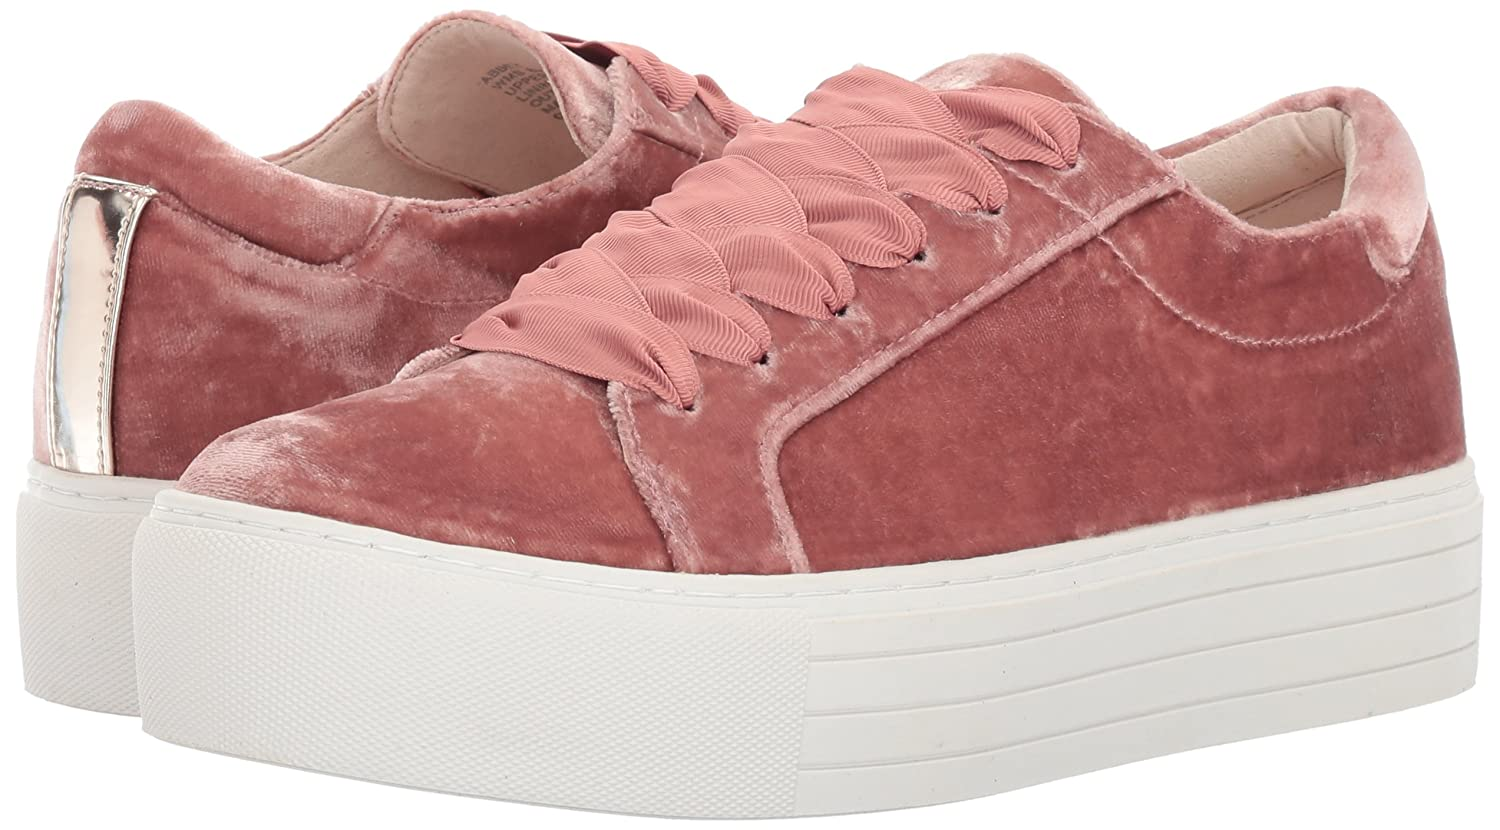 Kenneth Cole New York Women's Abbey Platform Lace B071CF3MQC up Velvet Fashion Sneaker B071CF3MQC Lace 9 B(M) US|Blush 7286f5